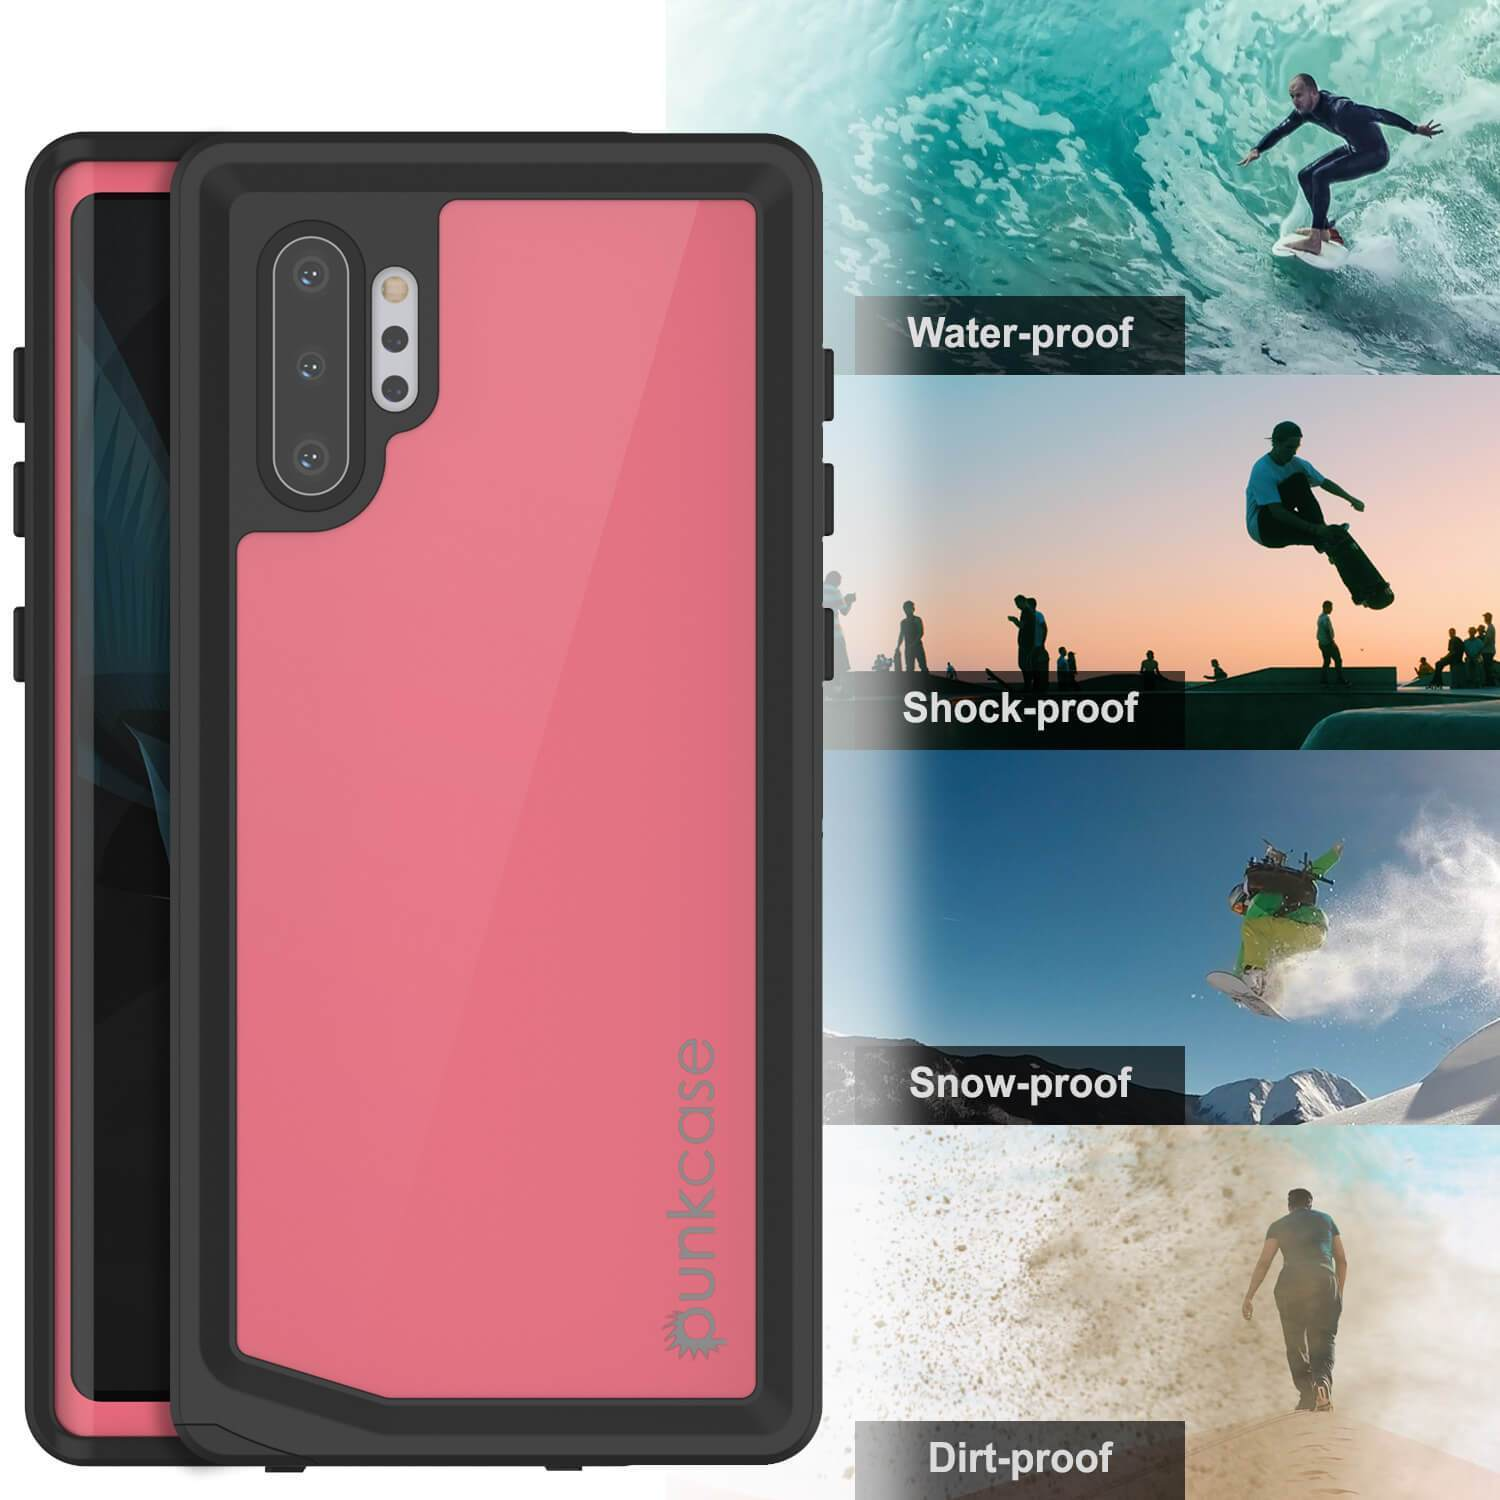 Galaxy Note 10+ Plus Waterproof Case, Punkcase Studstar Pink Thin Armor Cover